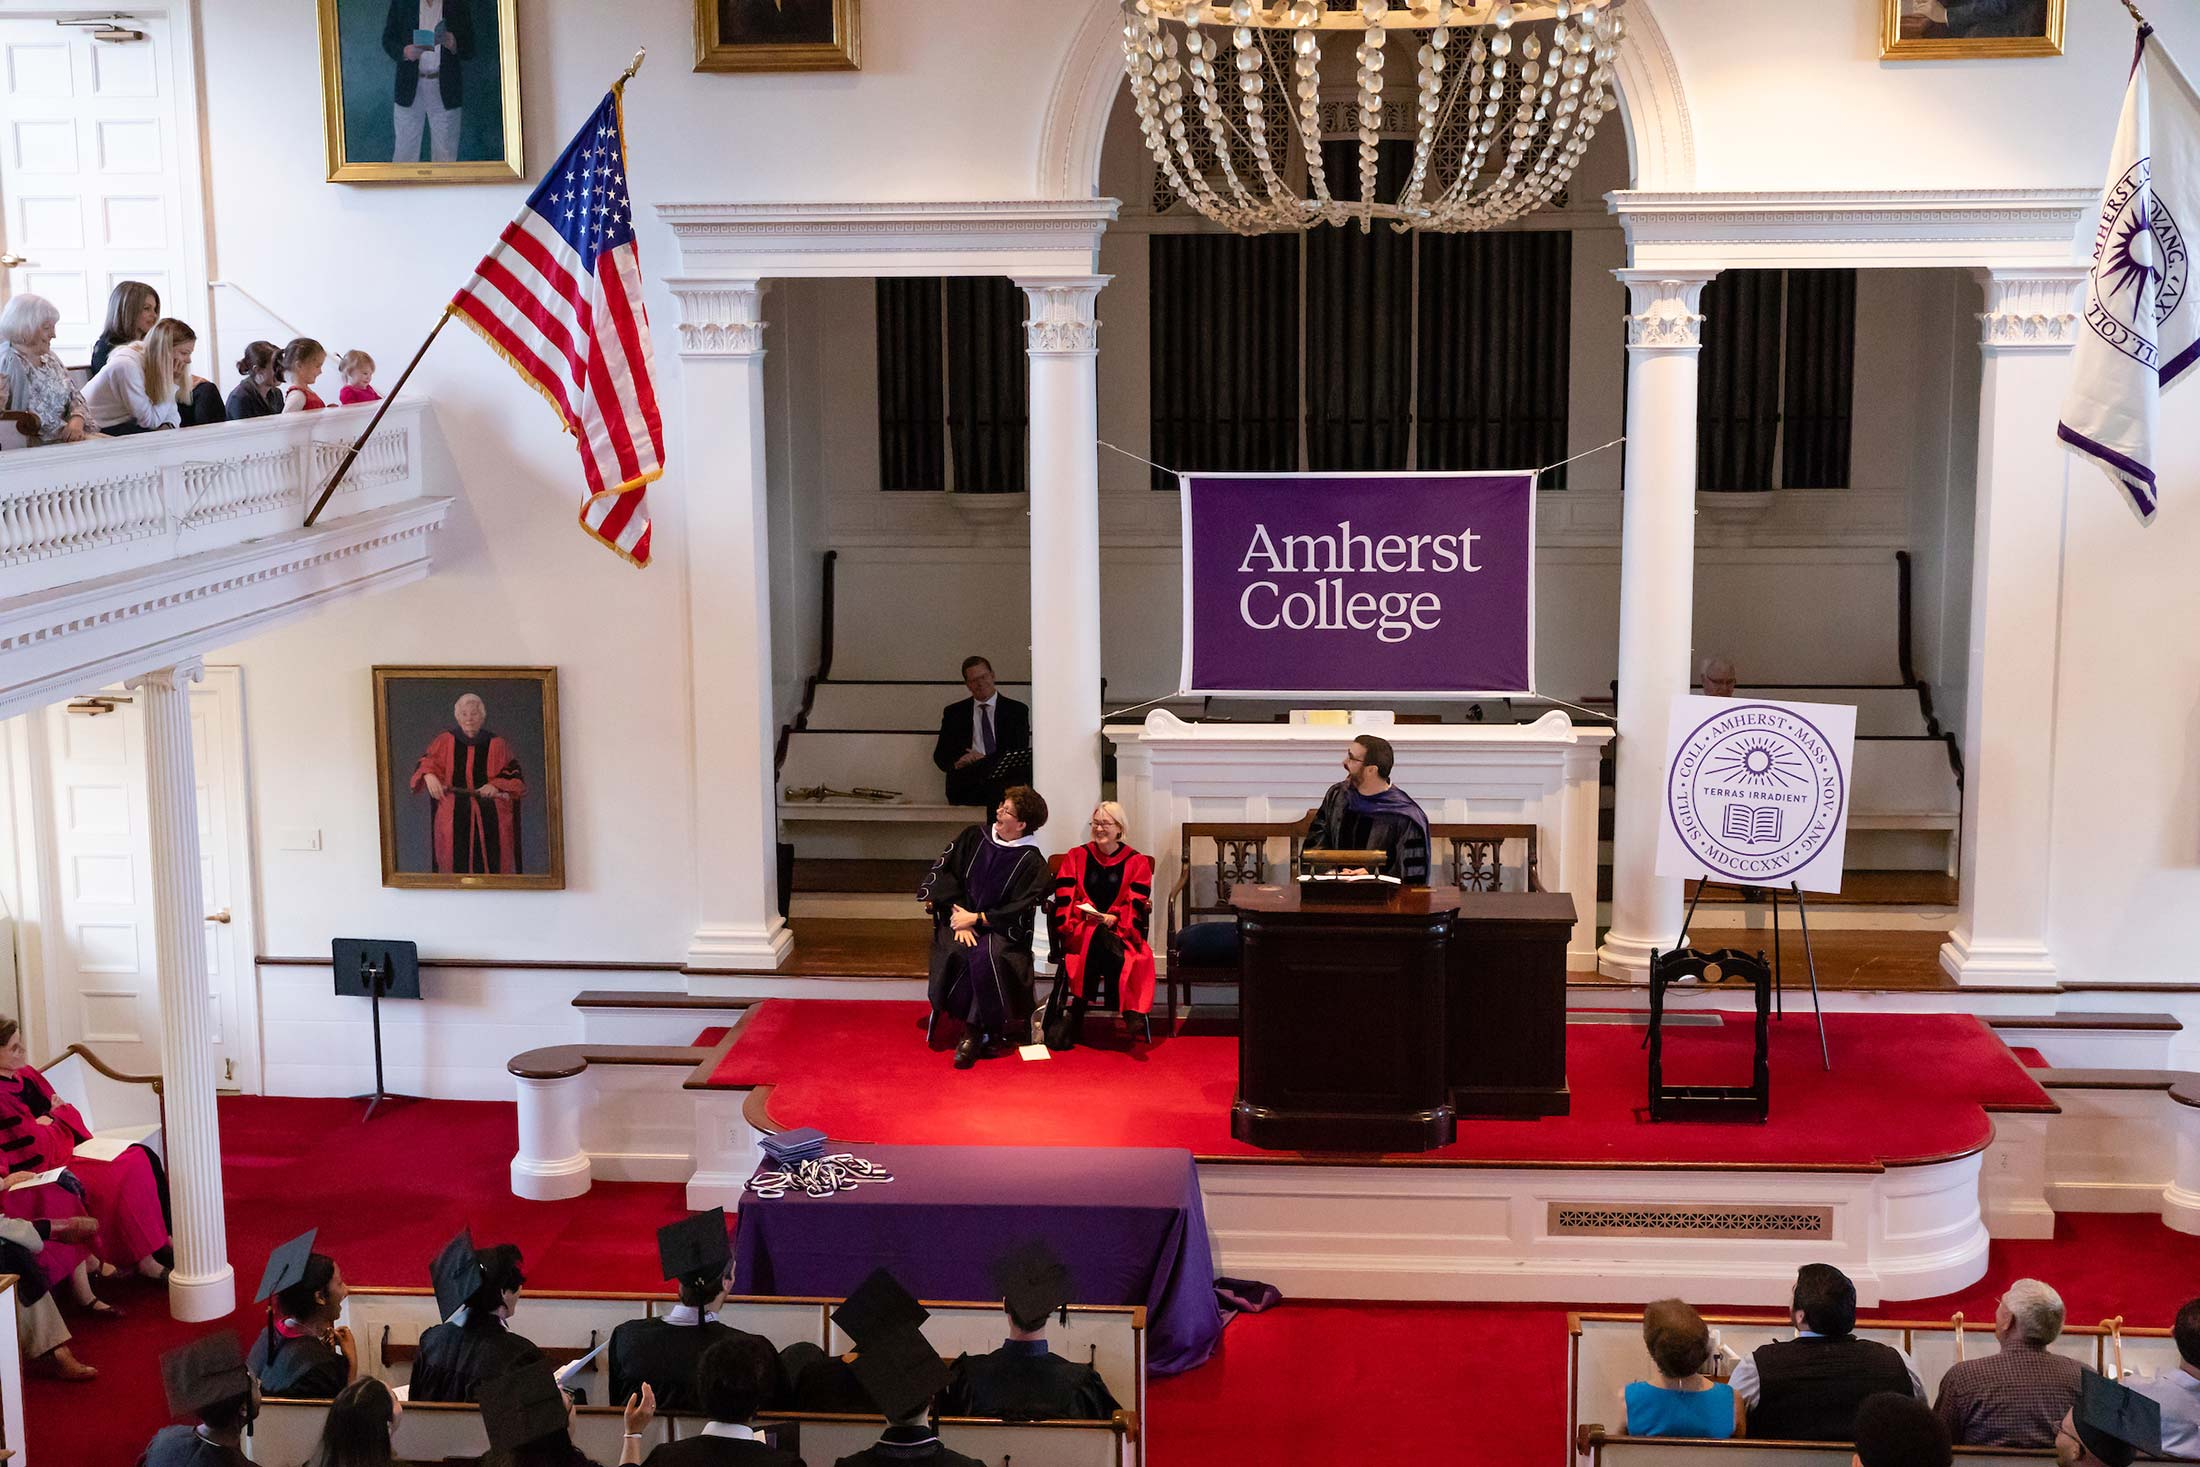 Senior Awards Assembly in Johnson Chapel at Amherst College